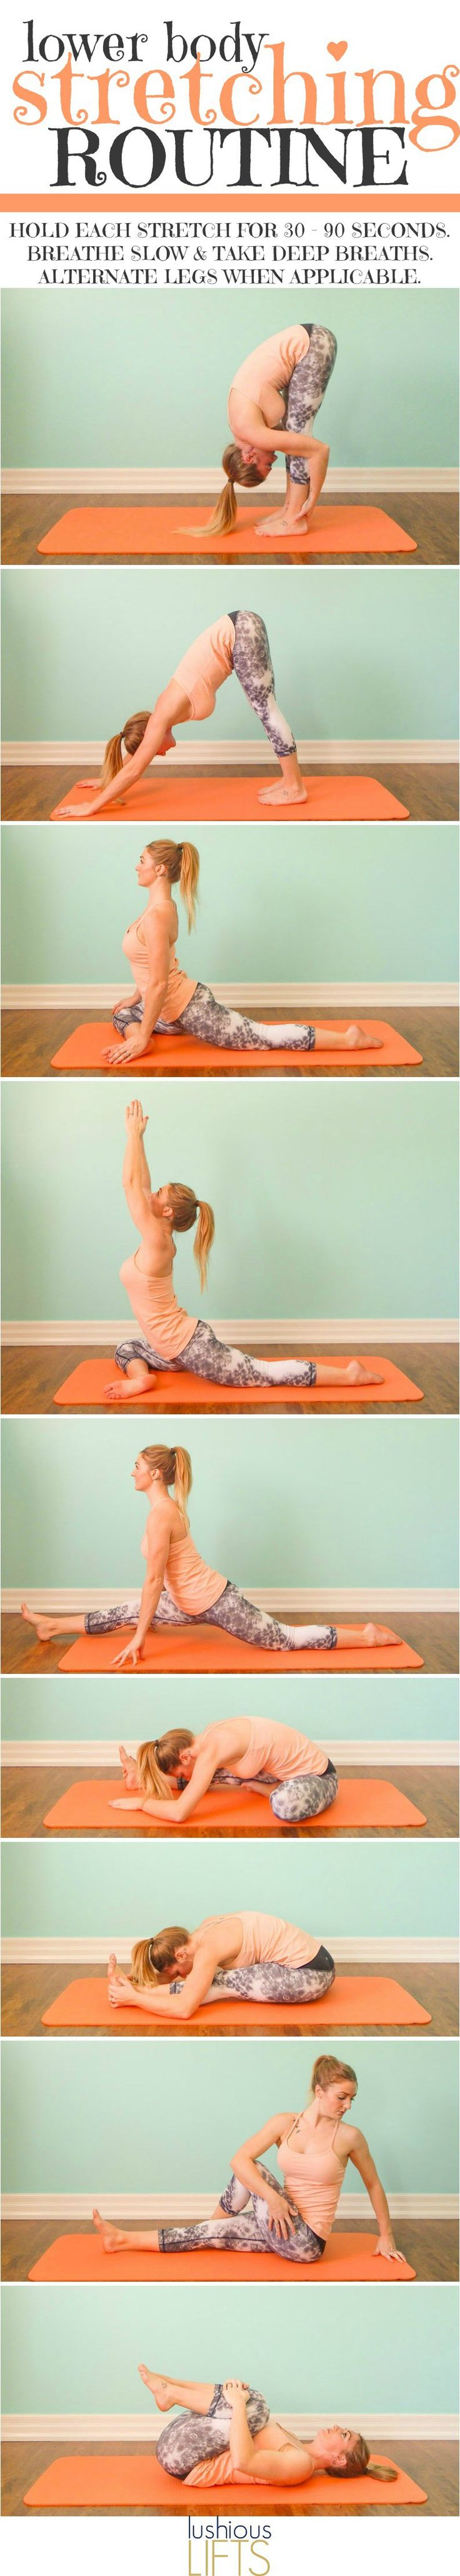 Lower Body Stretching Routine which Focuses on the Hips, Glutes and Hamstrings    Lushious Lifts